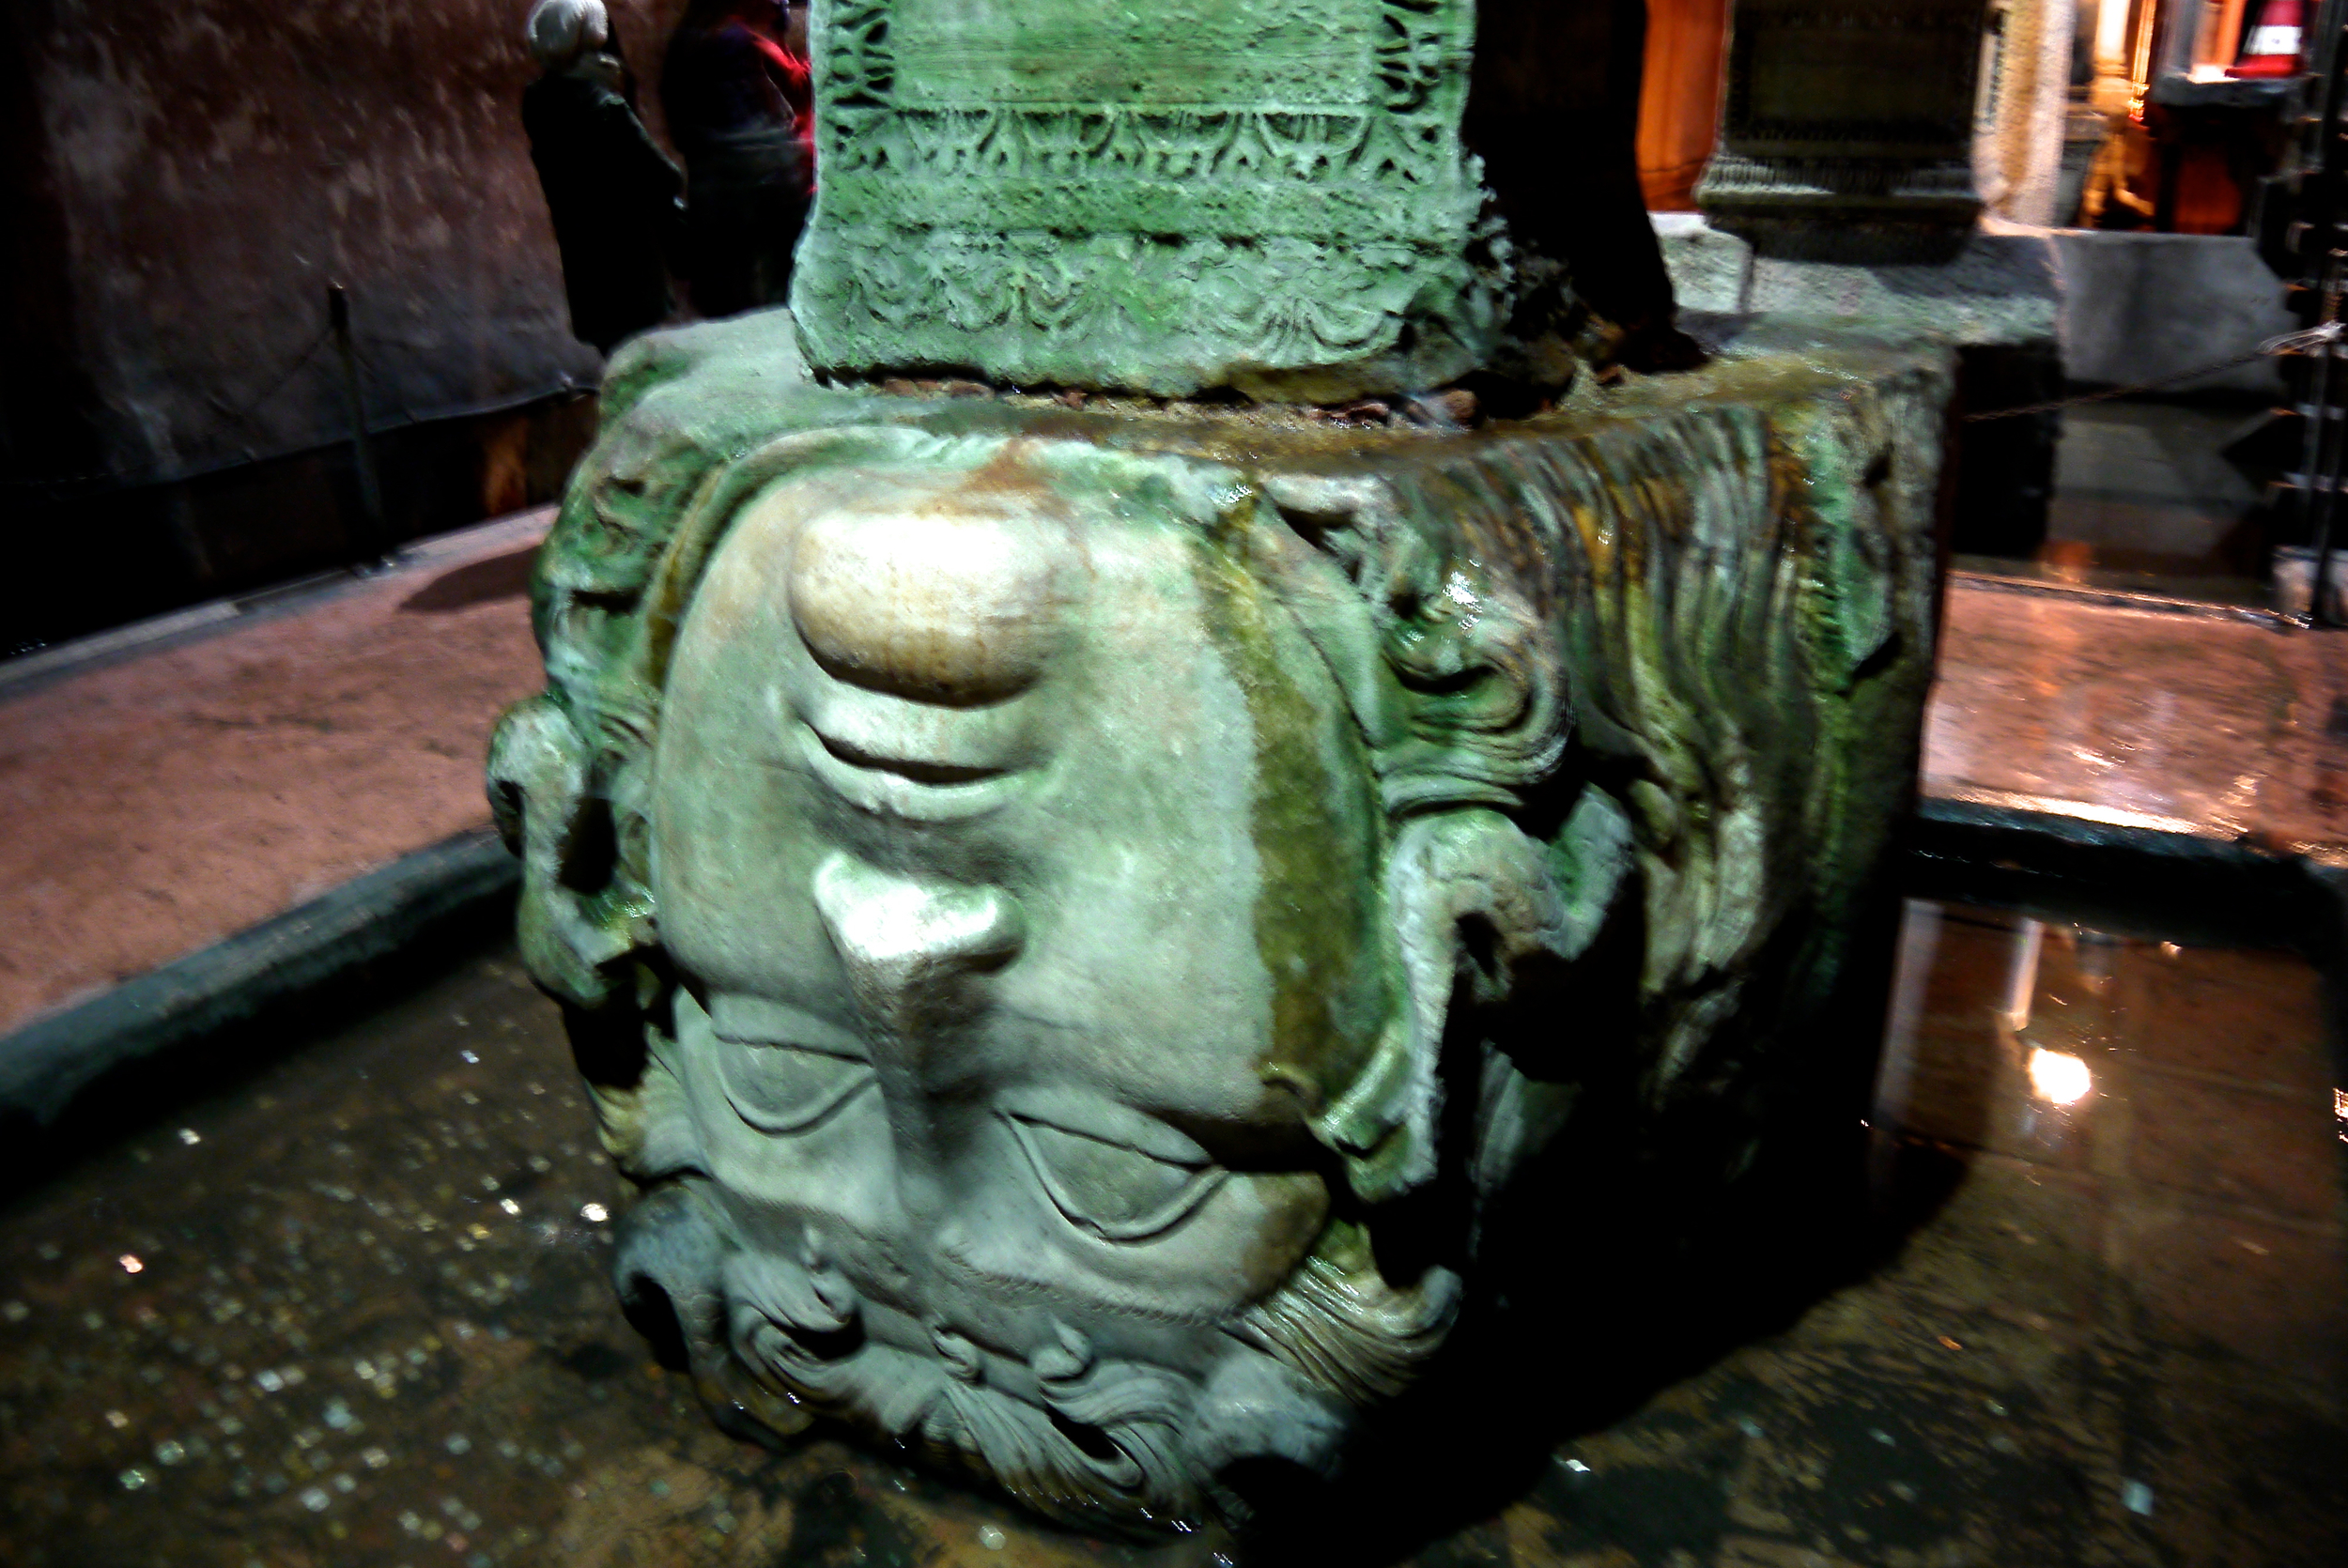 Figure 3. Upside down Medusa head